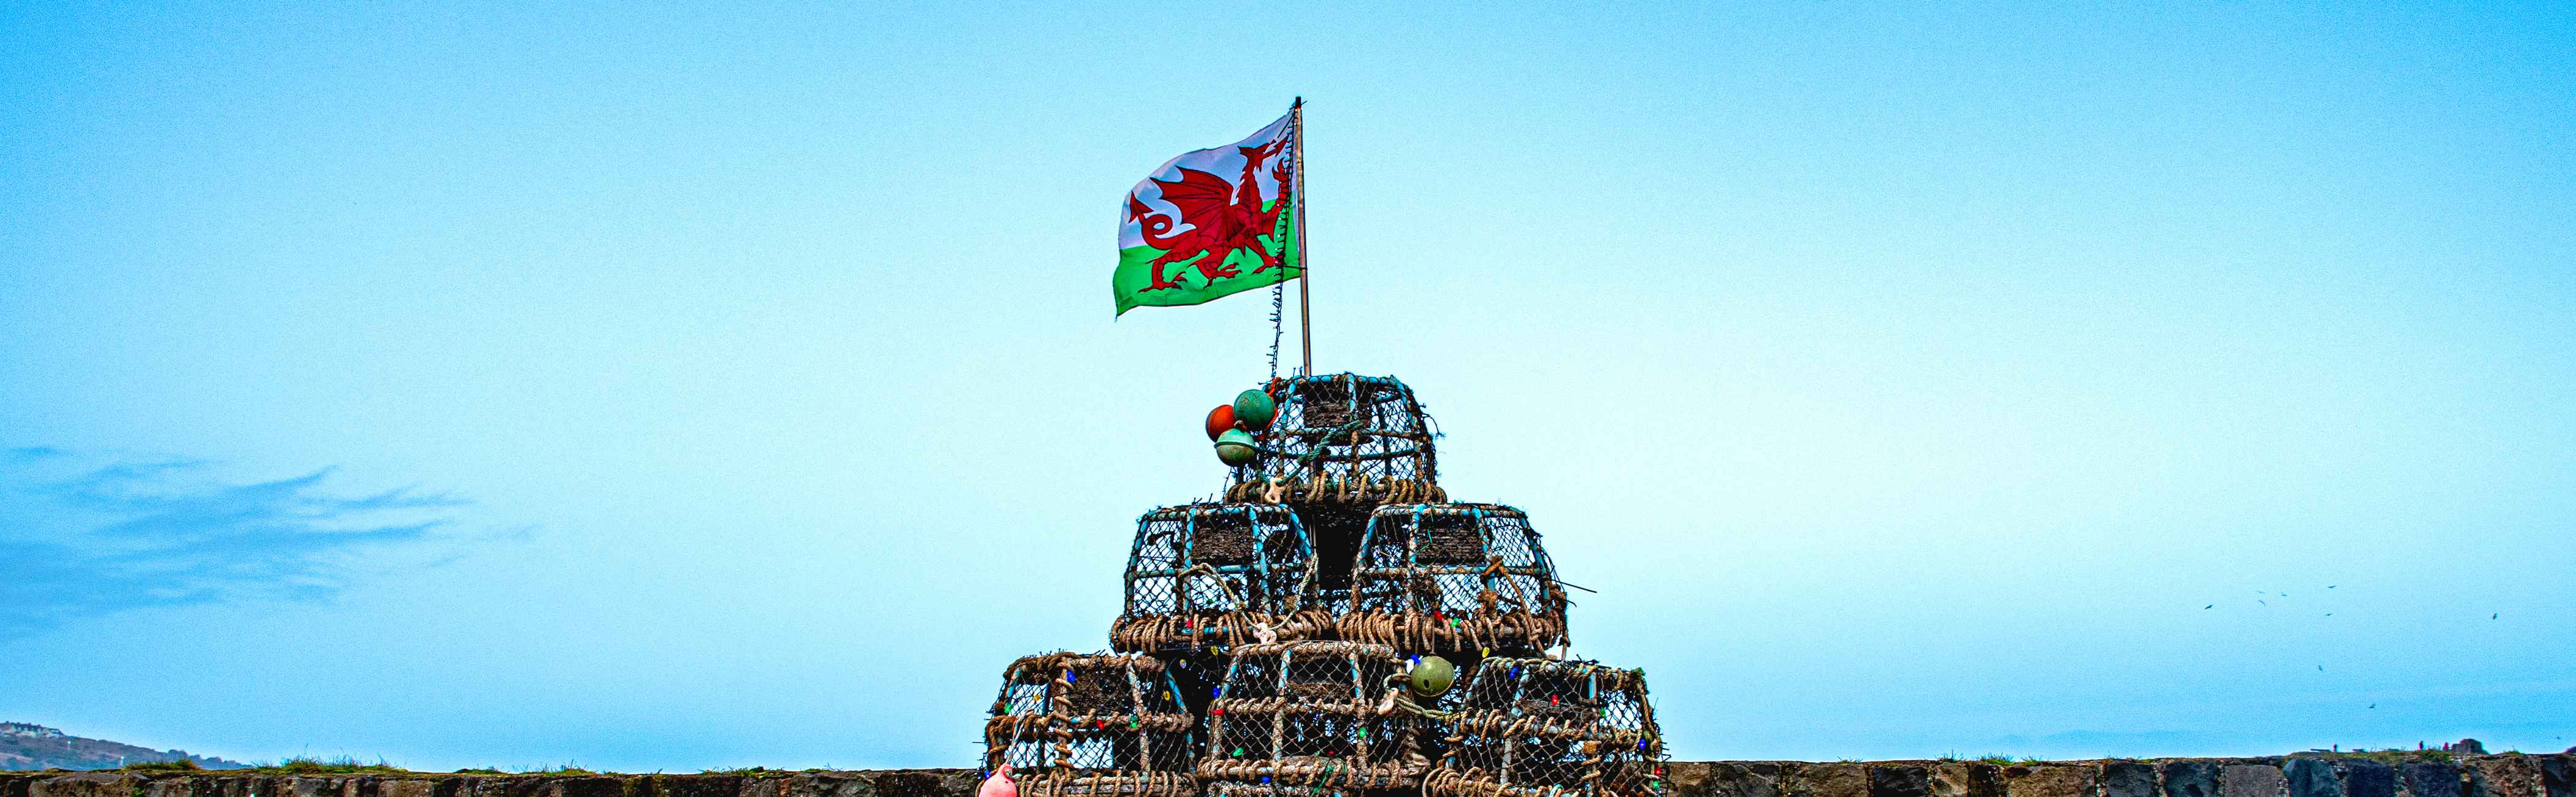 Welsh flag flying above a pyramid of lobster pots.